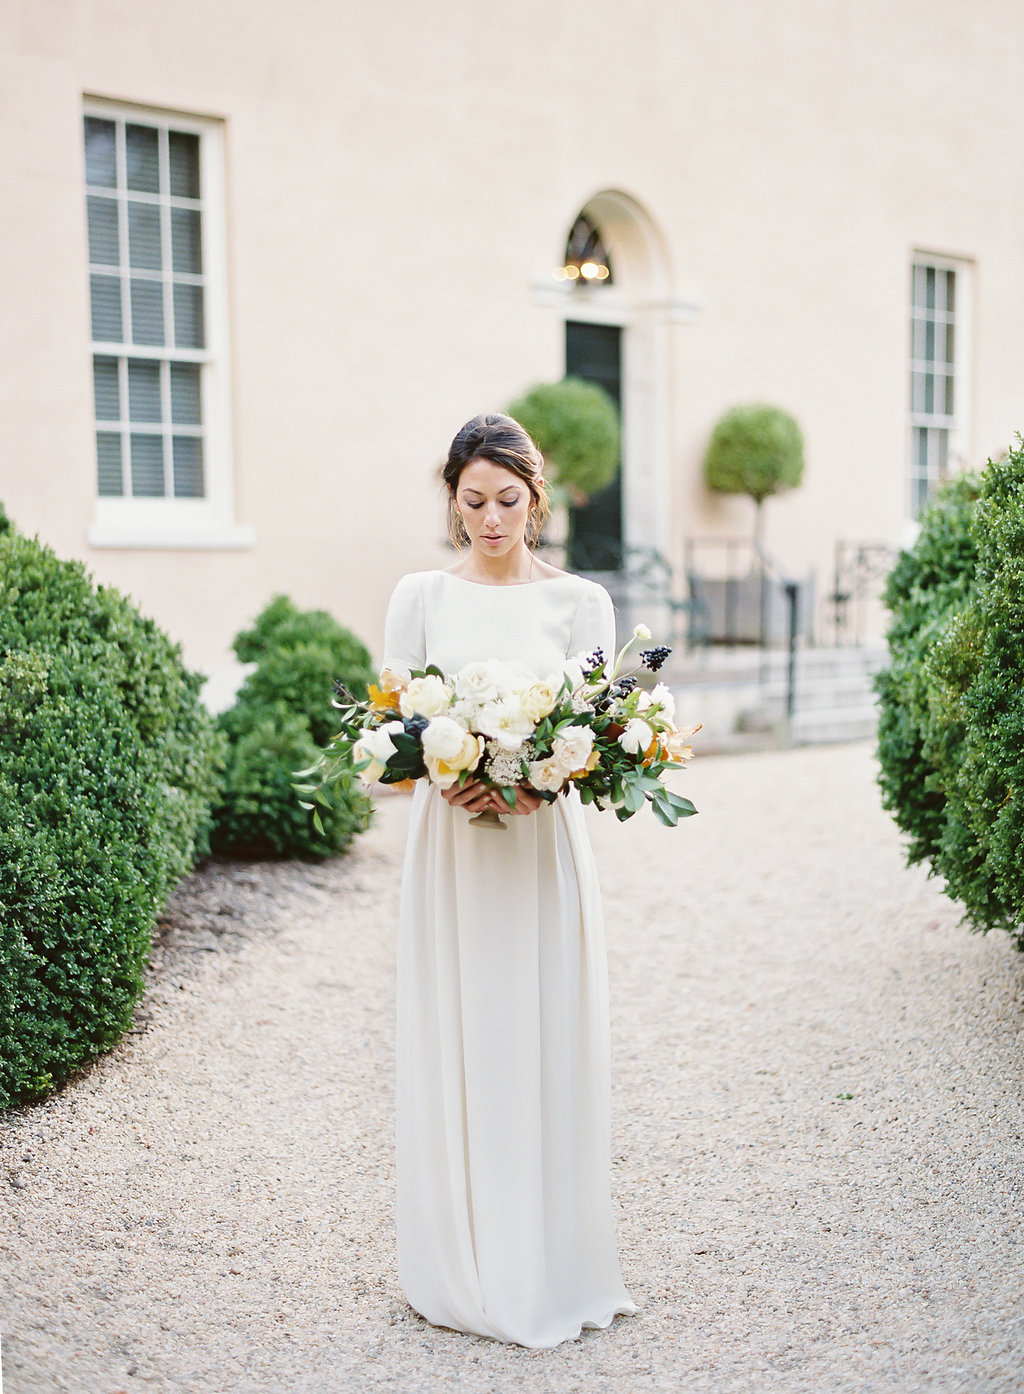 French Inspired Fall Wedding with Fine Art Destination Wedding Planner East Made Event Company and DC Film Photographer Vicki Grafton Photography at Tudor Place in Washington DC-107 copy.jpg